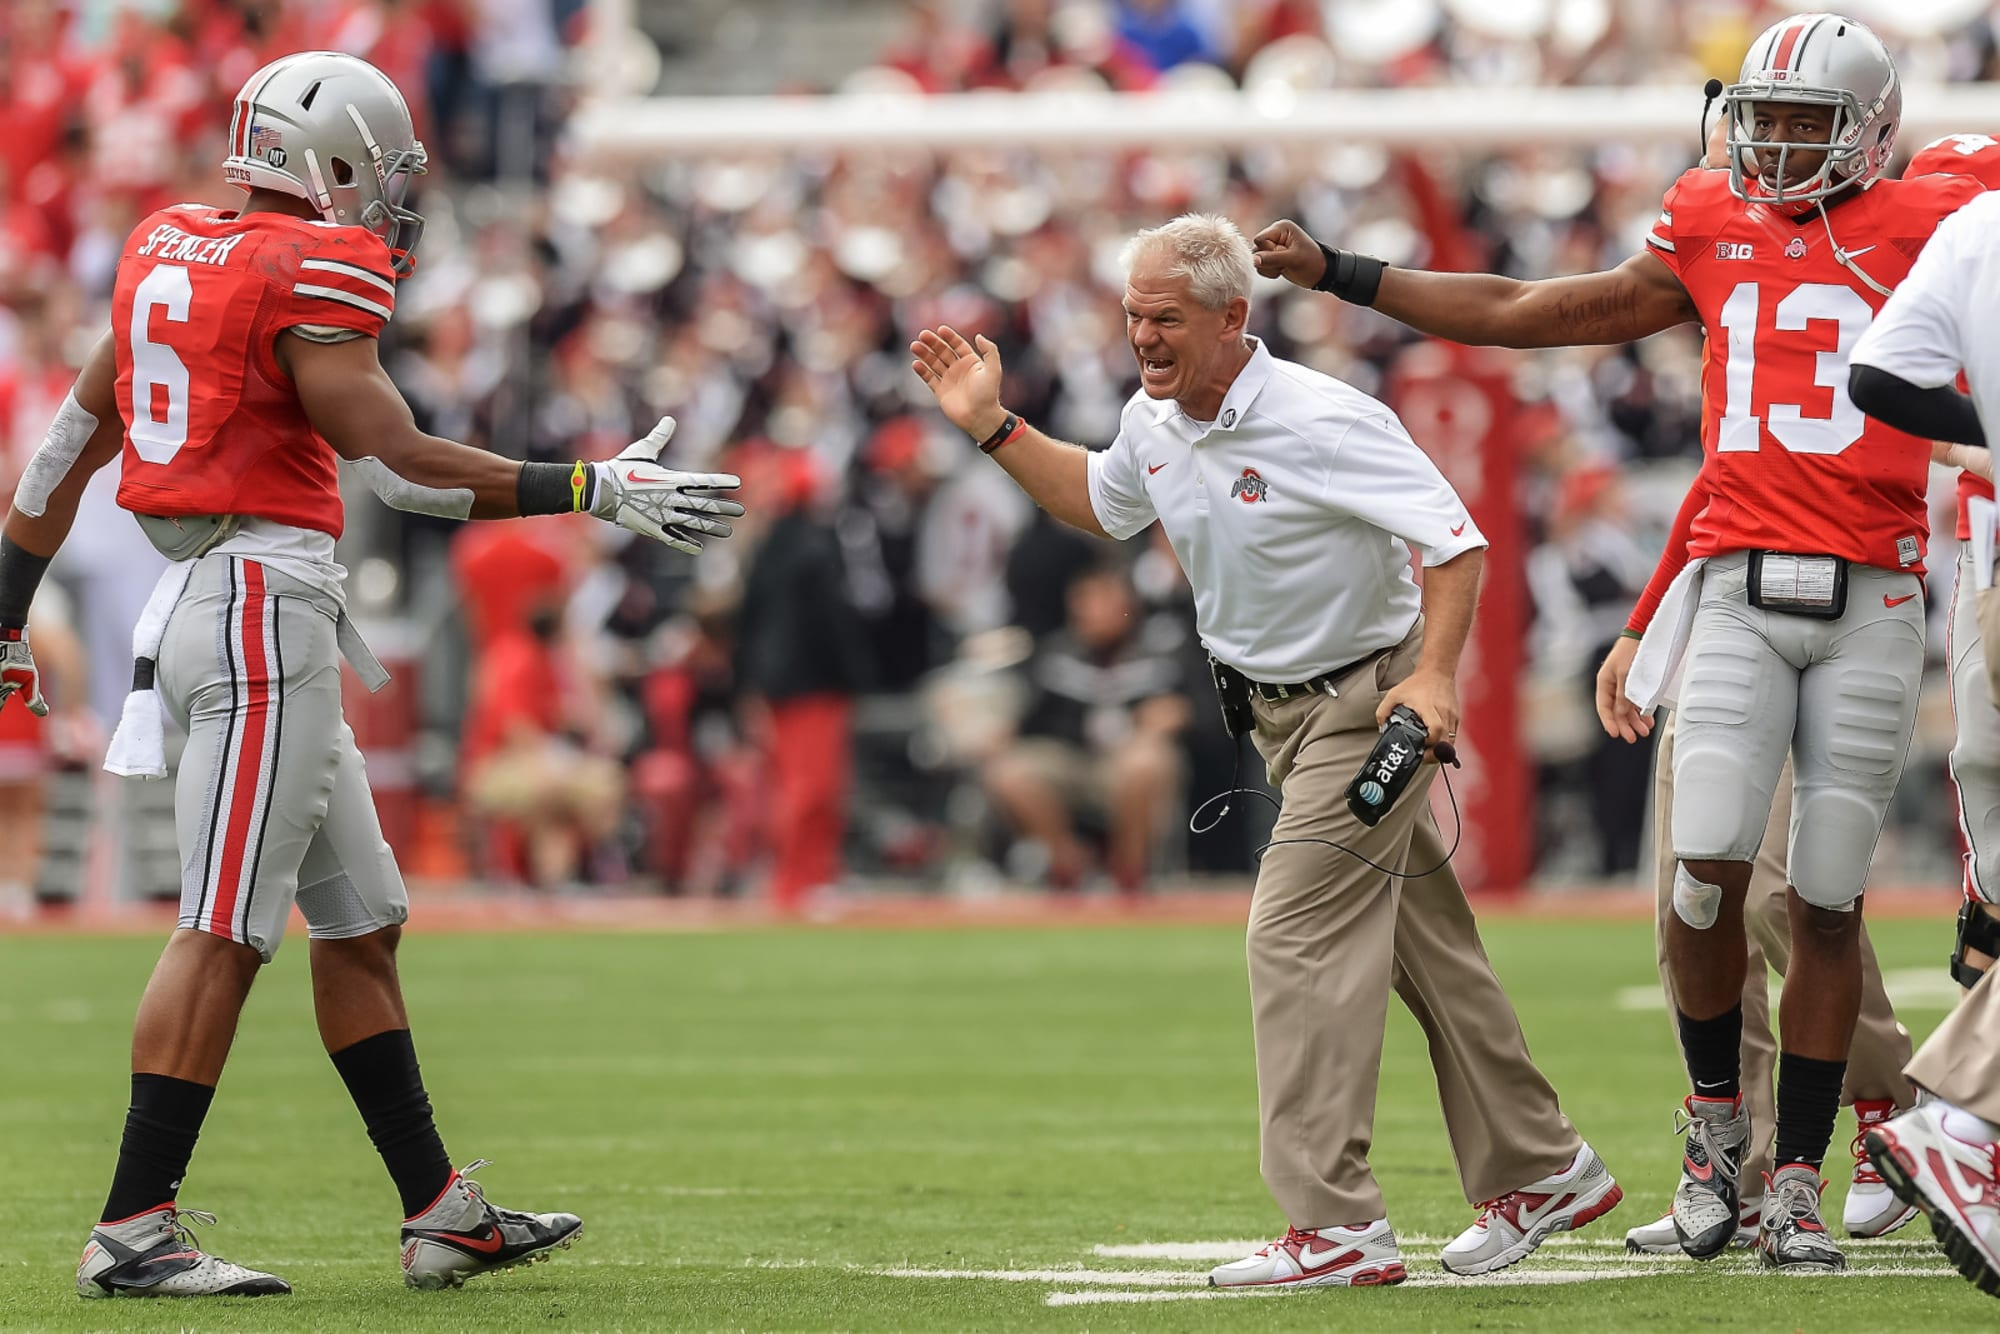 Ohio State Football: Buckeyes off to fast start in 2022 ...